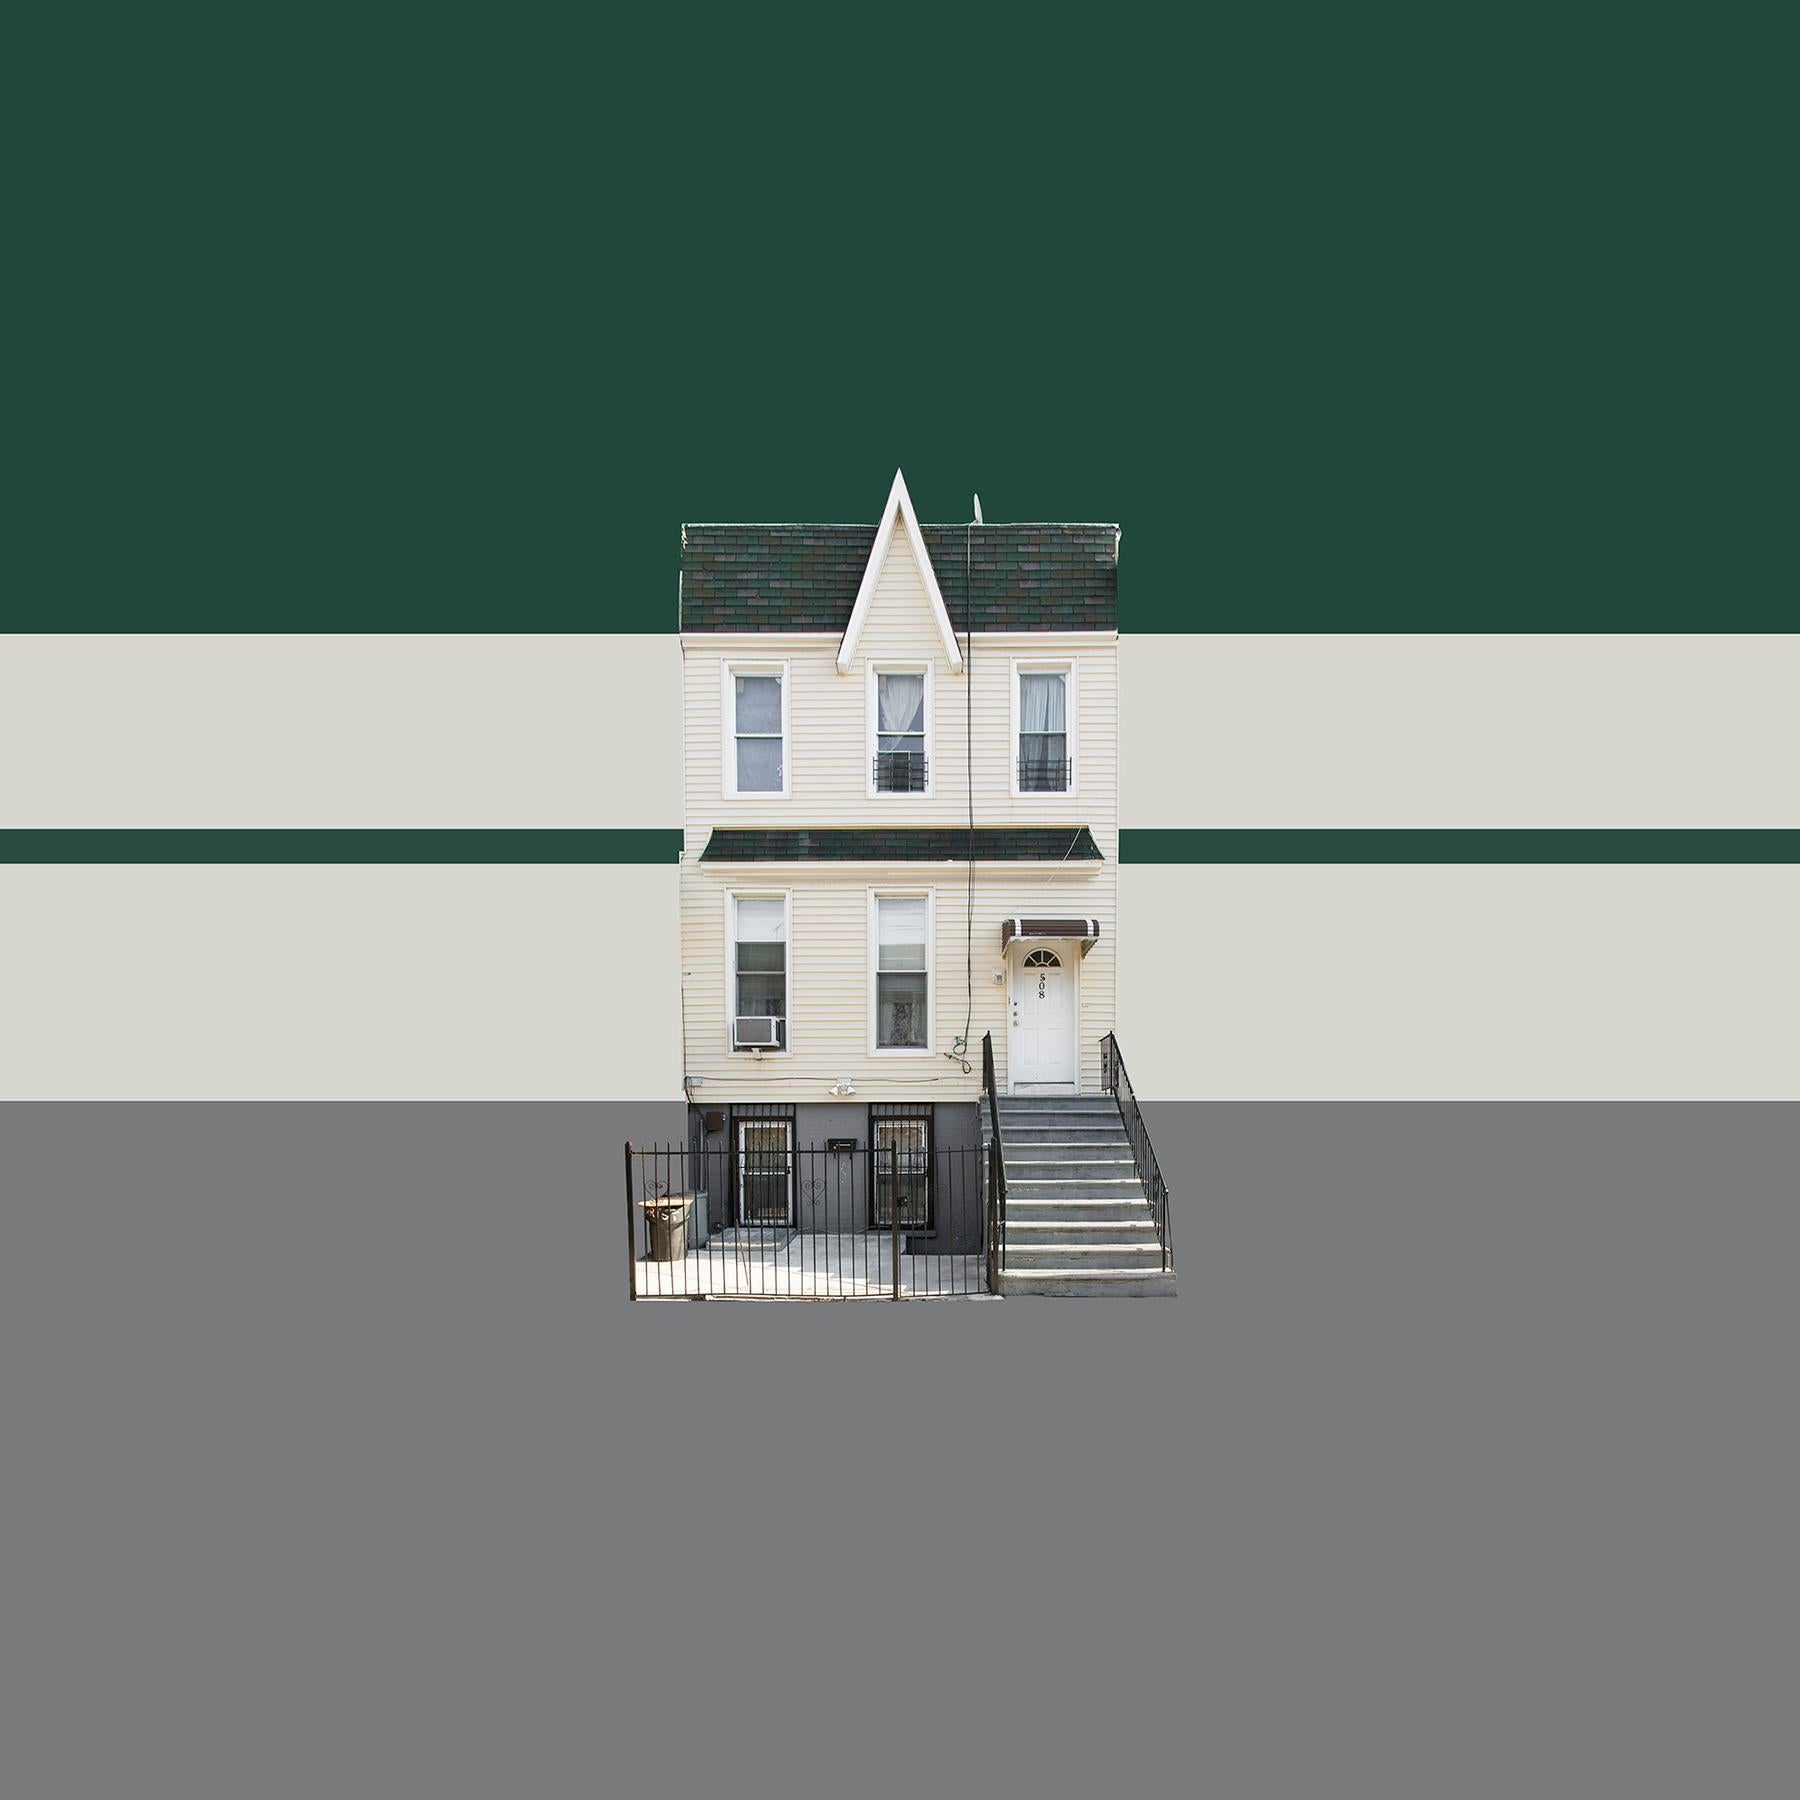 Boswijck 4 minimalist urban architecture in green photo 21 x 21 inches framed